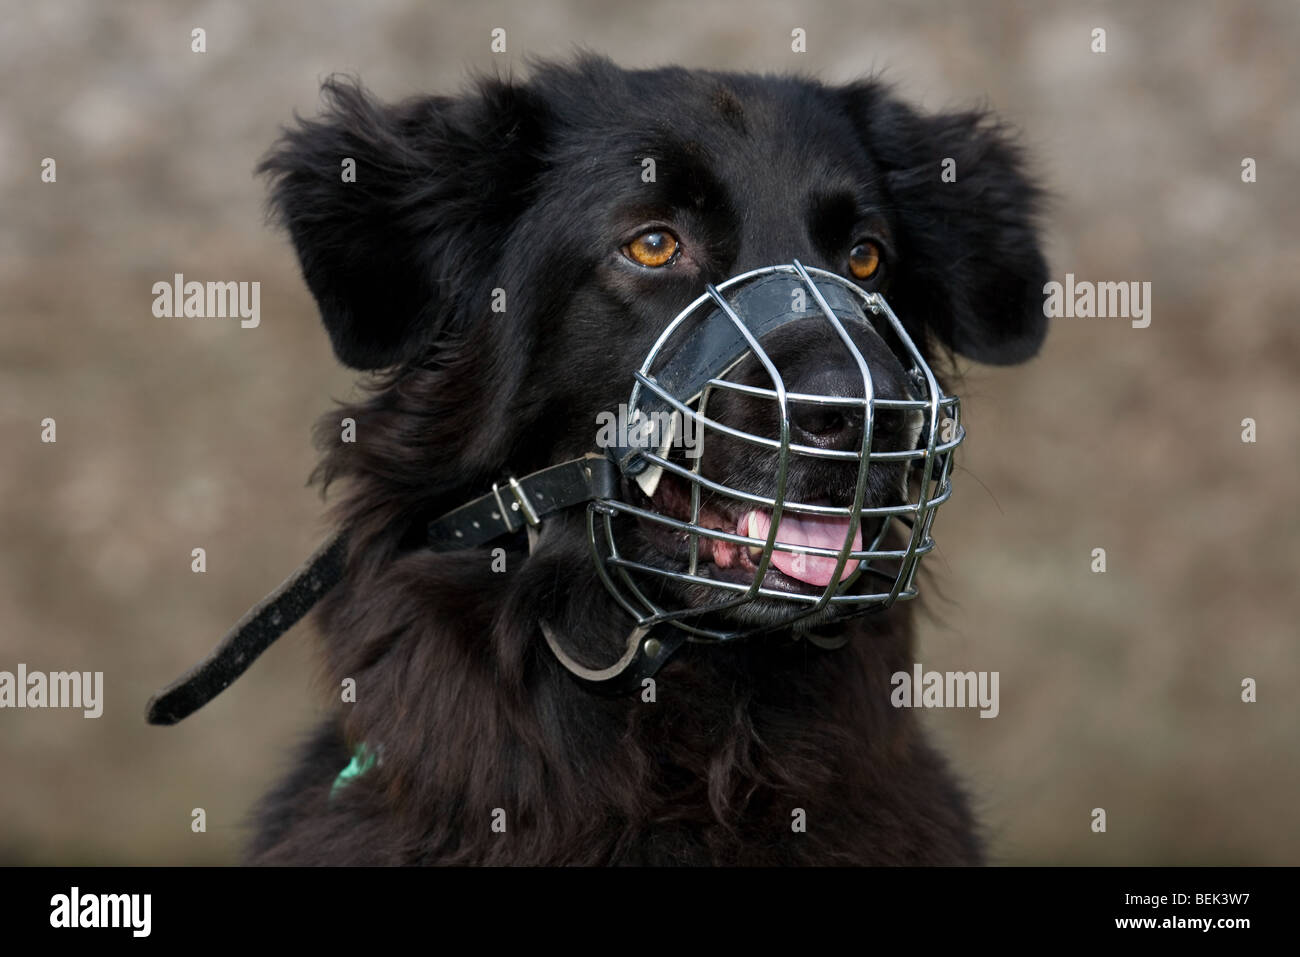 Close up of black mongrel dog wearing muzzle to prevent biting - Stock Image